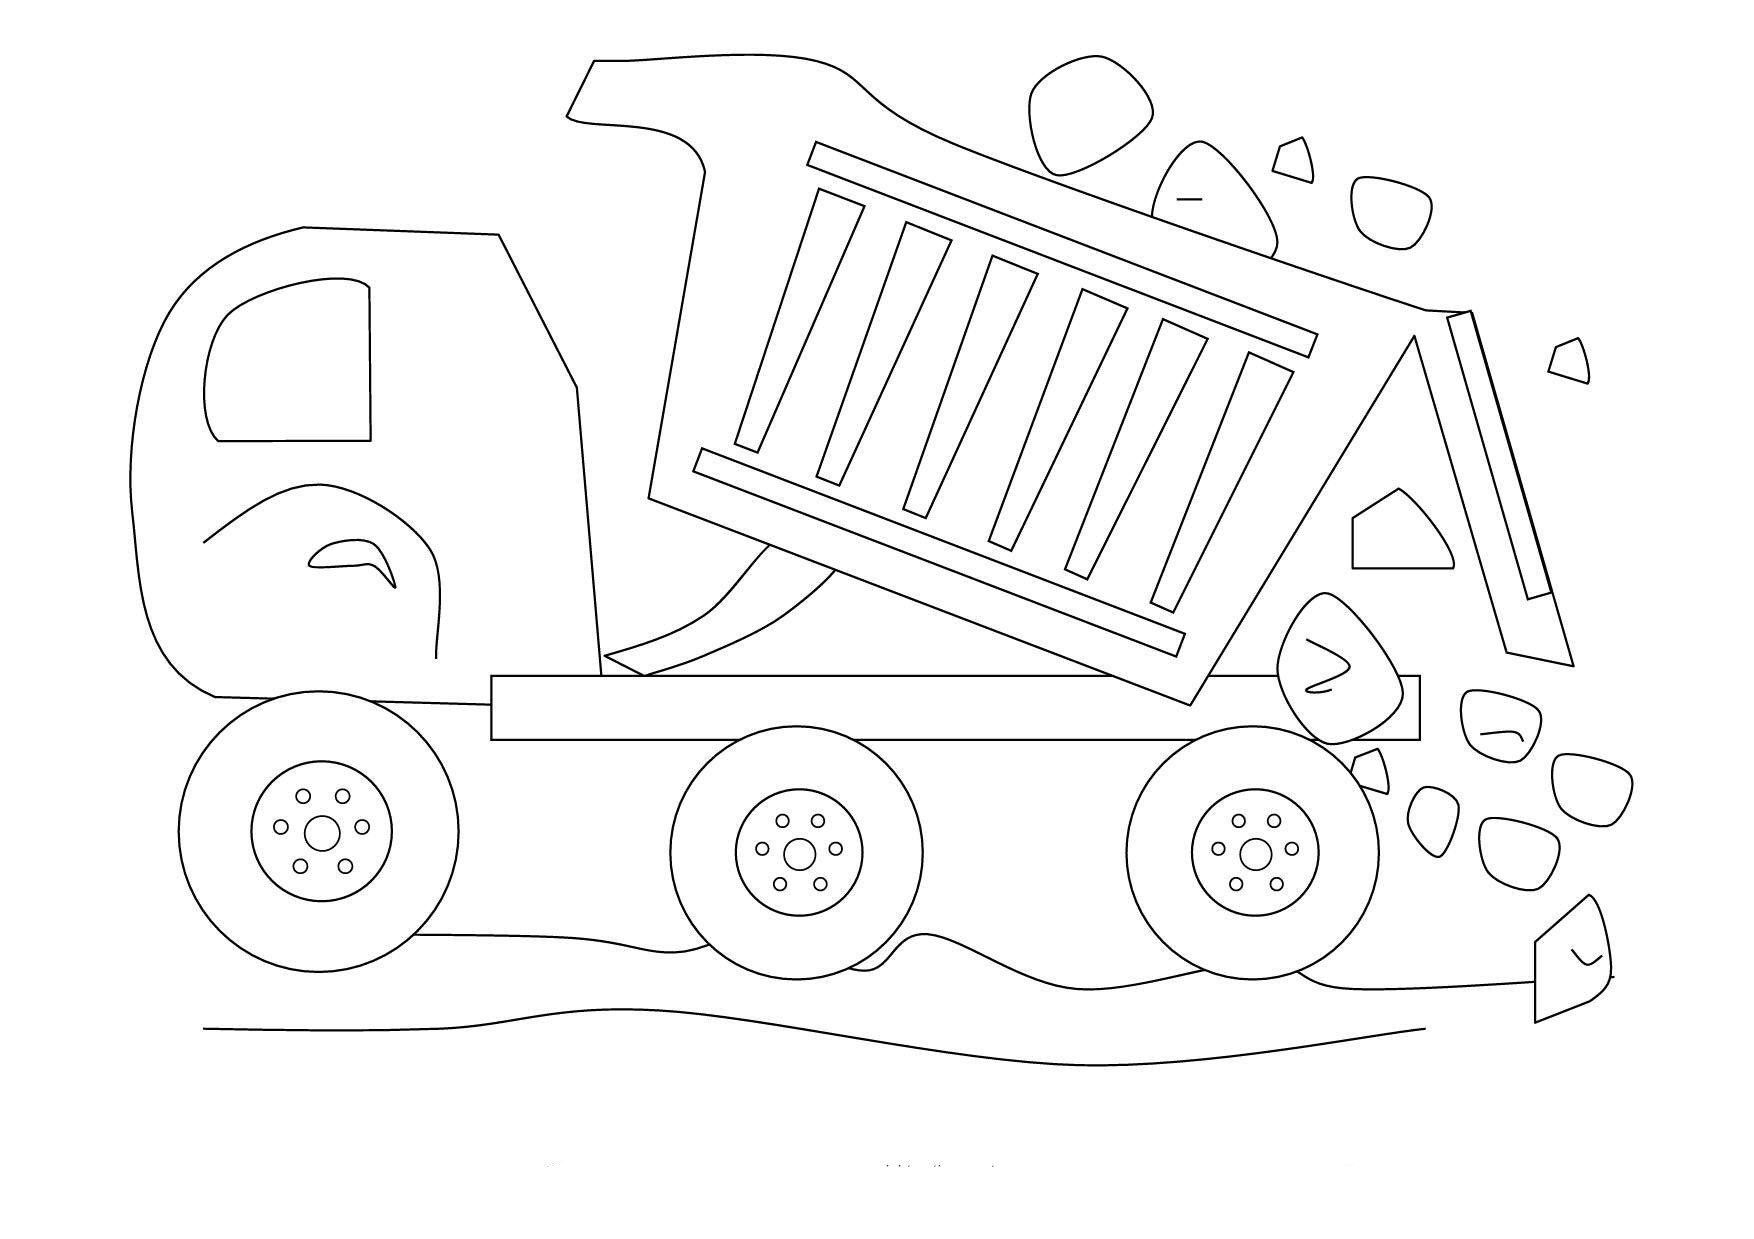 Garbage Truck Coloring Page Inspirational Printable Dump Truck Coloring Pages Monster Truck Coloring Pages Sports Coloring Pages Truck Coloring Pages